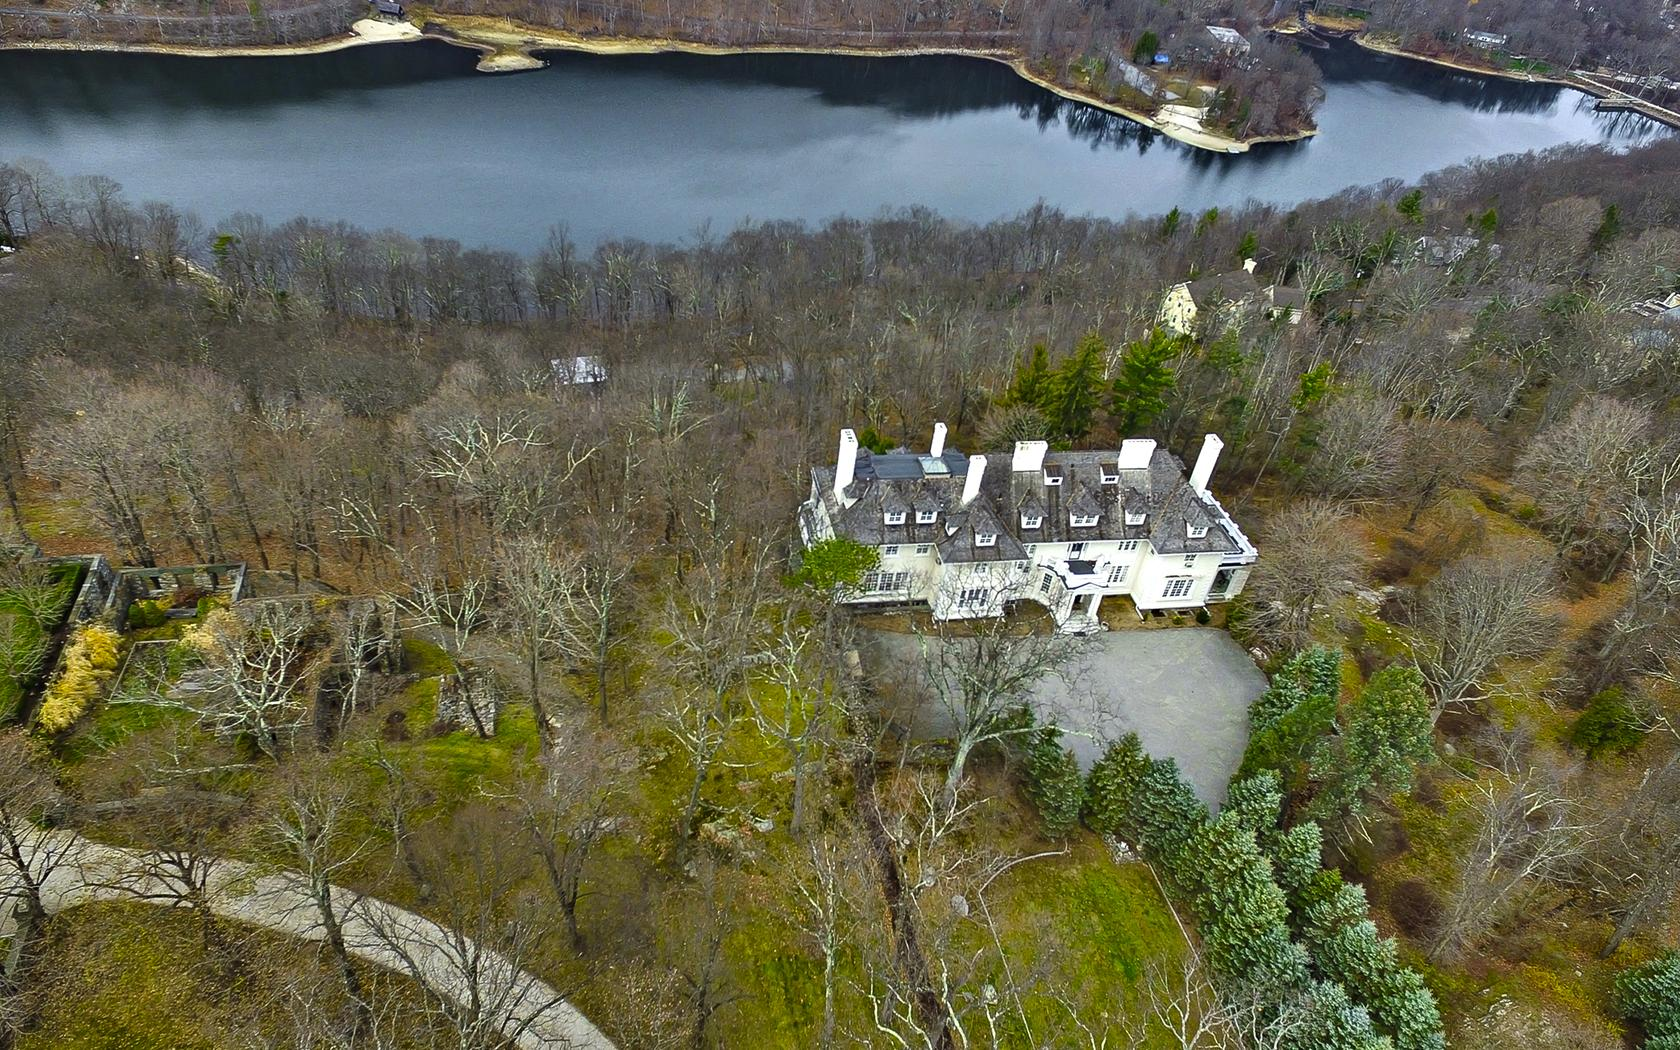 Single Family Home for Sale at FRELINGHUYSEN ESTATE Circuit Rd Tuxedo Park, New York 10987 United States